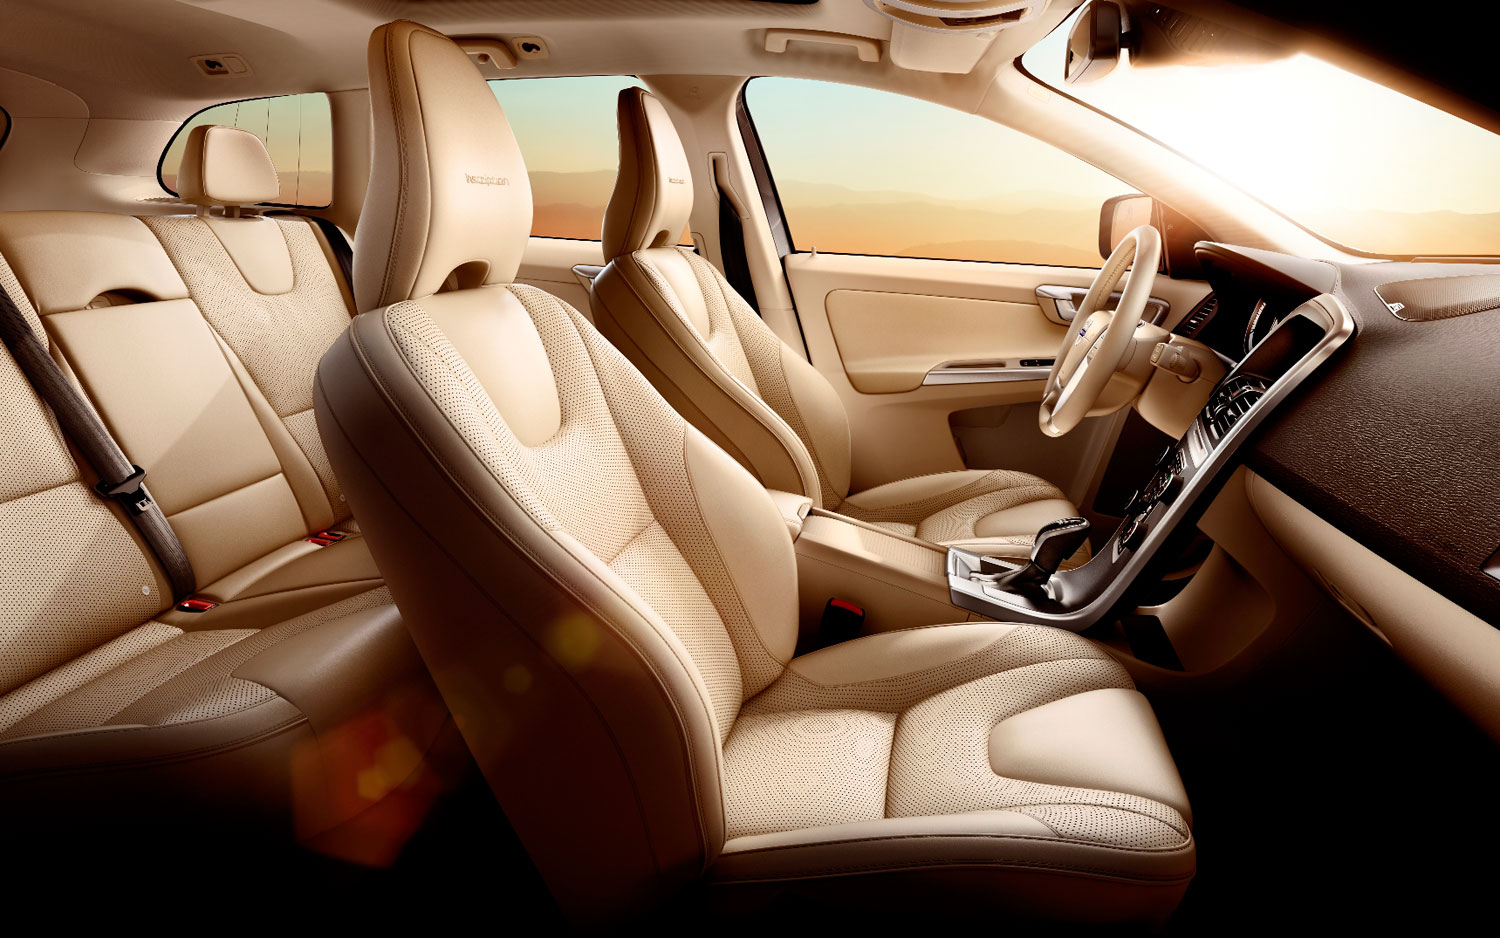 2013 Volvo XC60 Inscription Edition Packs A Luxurious Interior